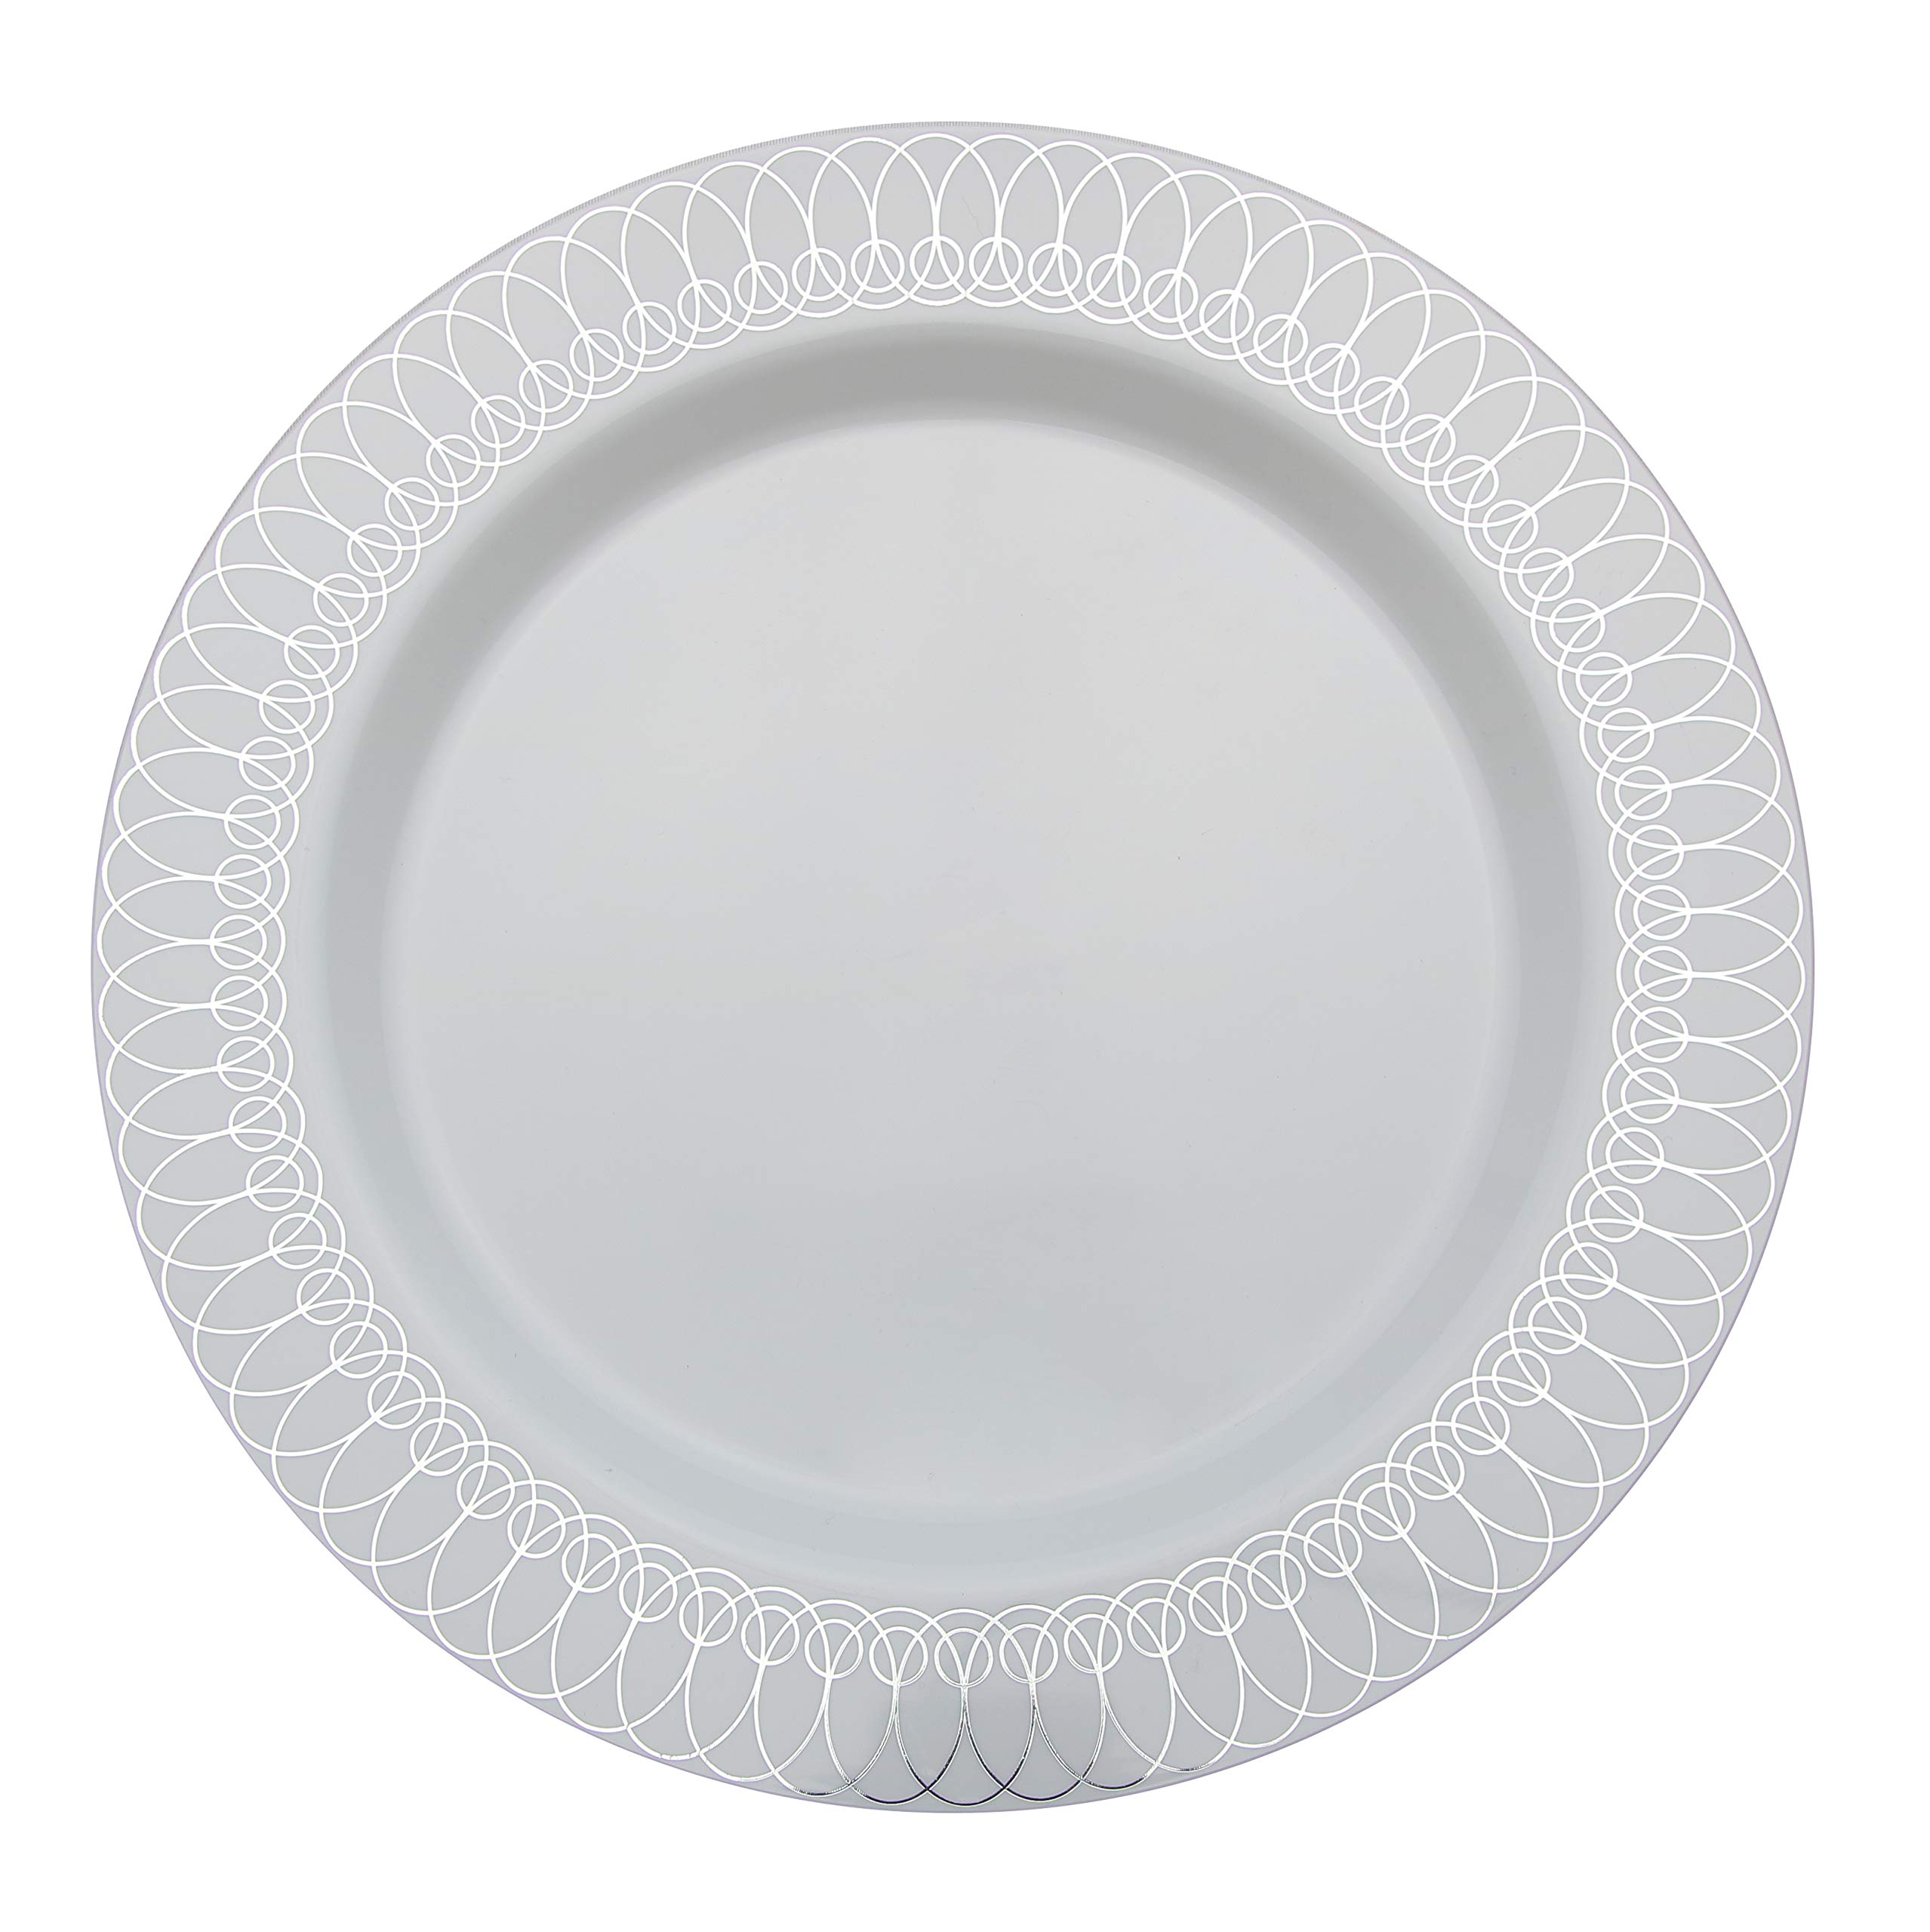 9in. Silver Ovals Design Premium Plastic Wedding Plates (40 Pack) China-Like